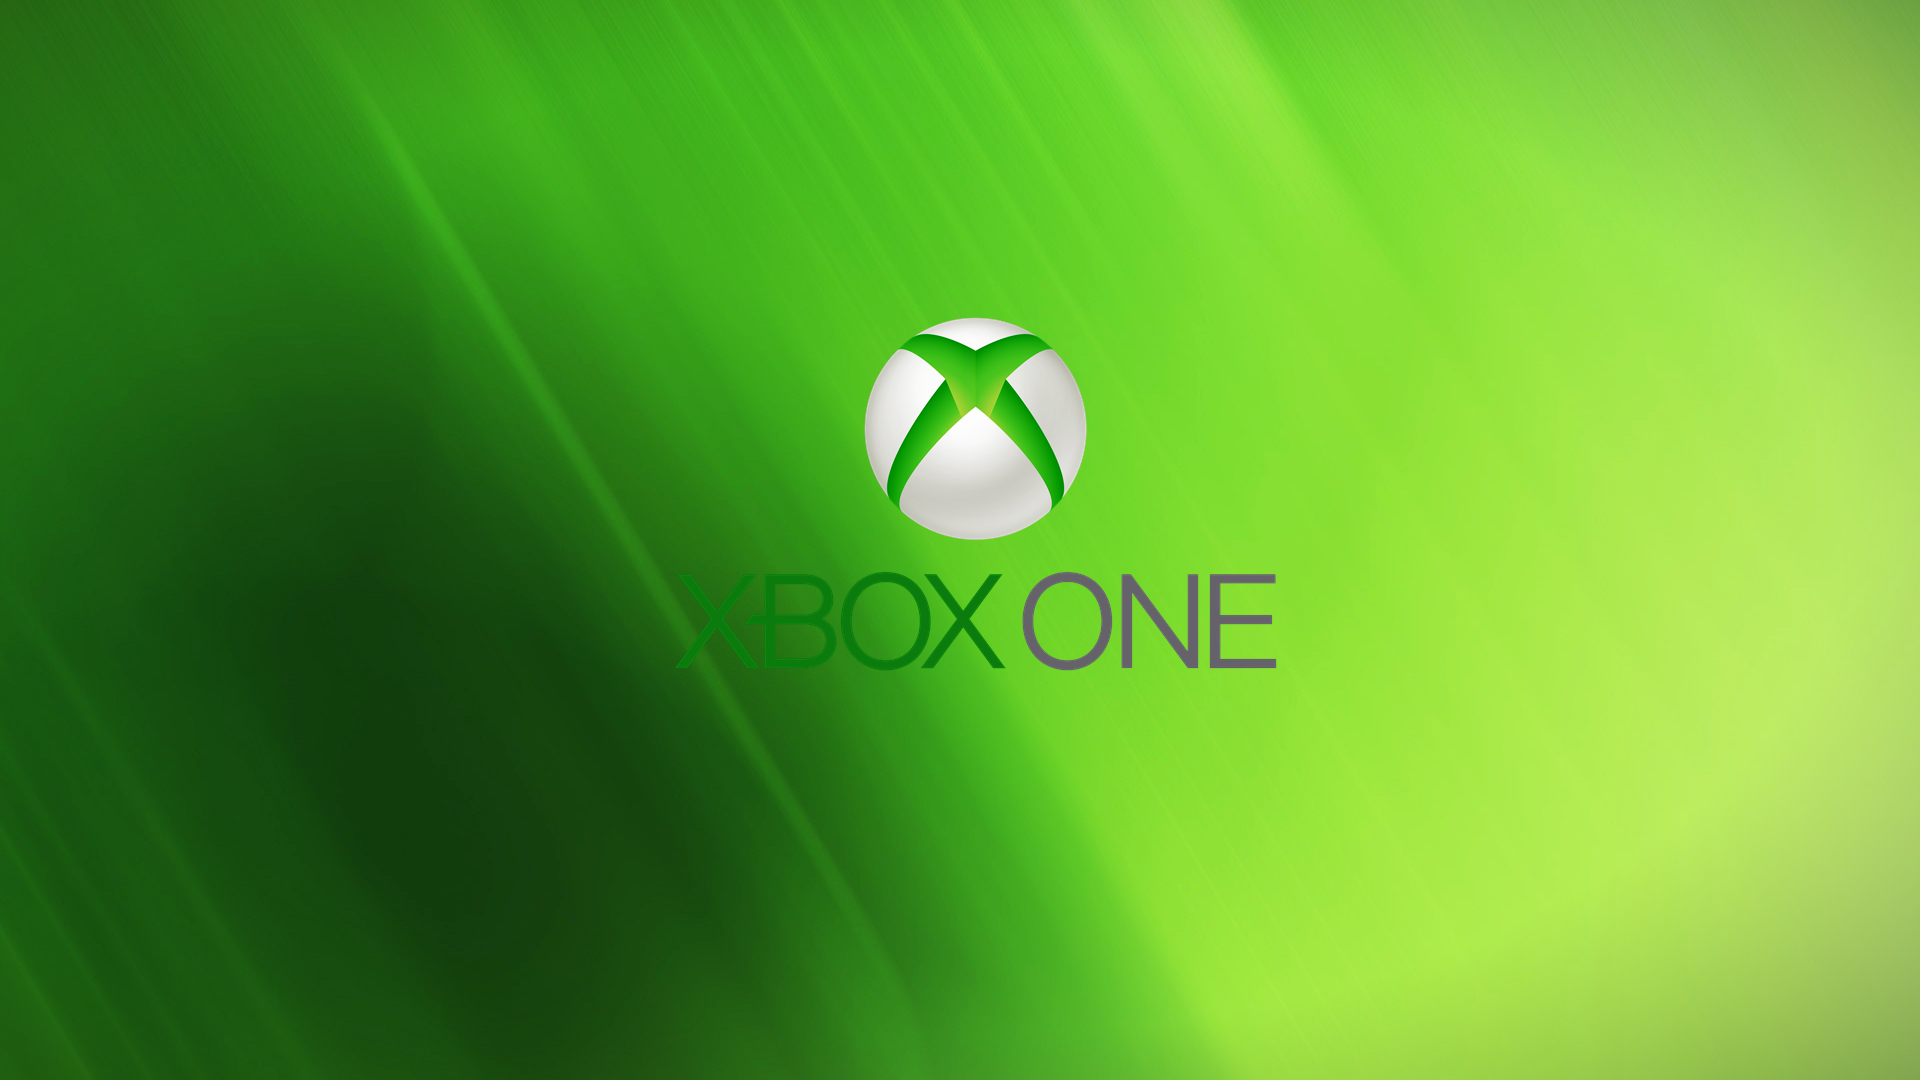 [49+] Free Wallpaper for Xbox One on WallpaperSafari